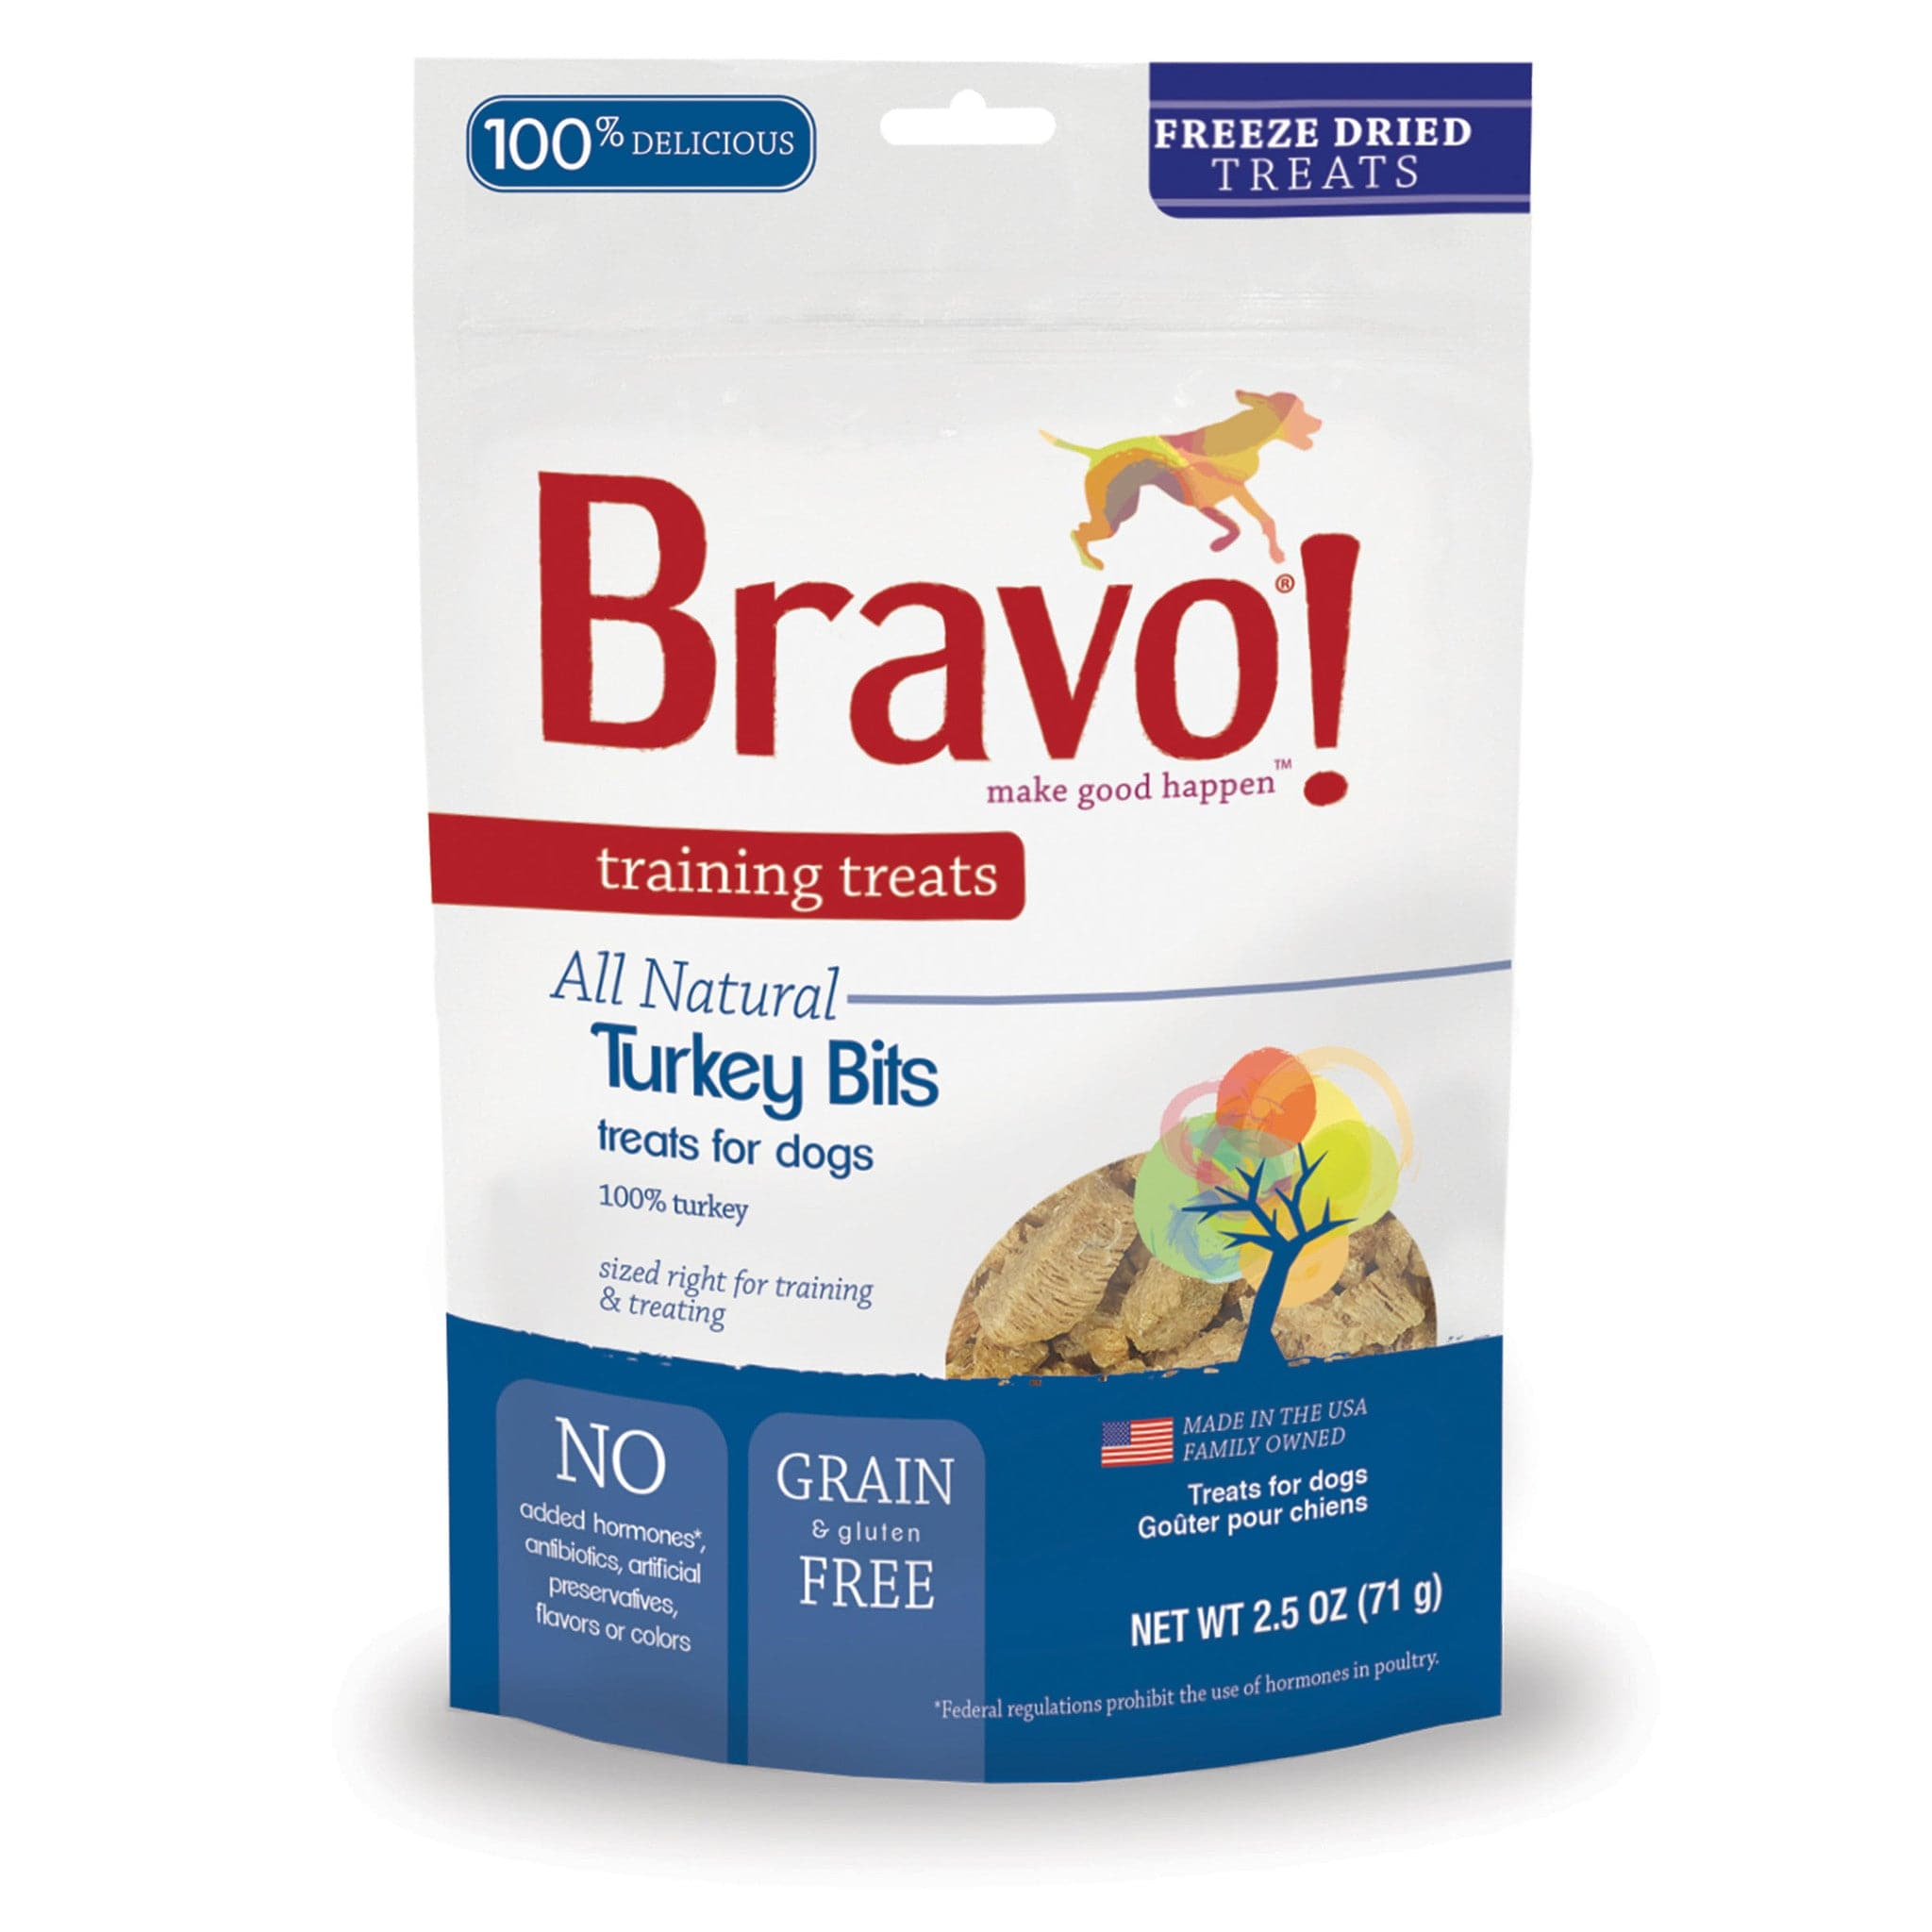 Bravo! Training Treats